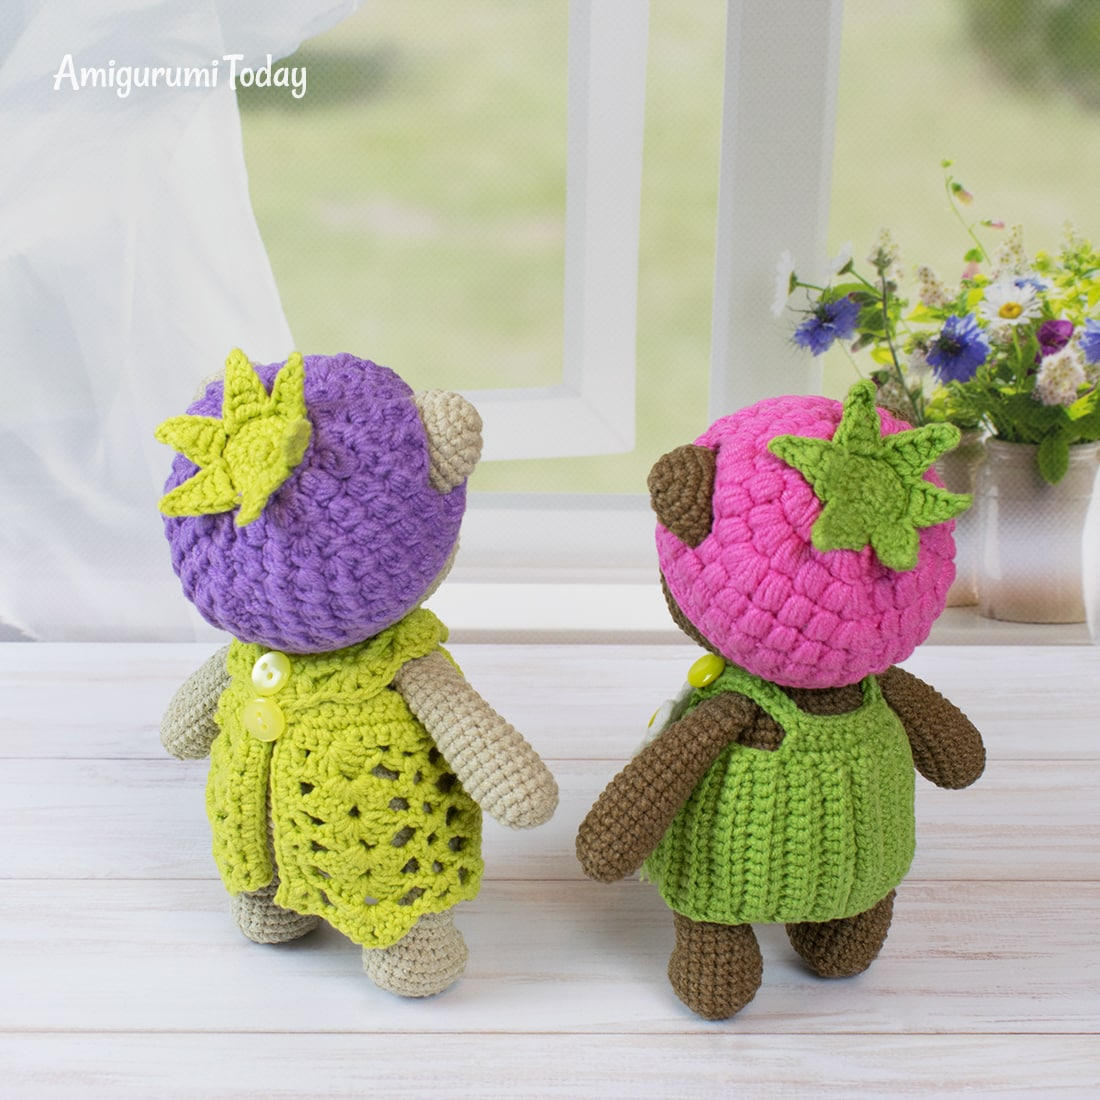 Amigurumi blackberry bear crochet pattern